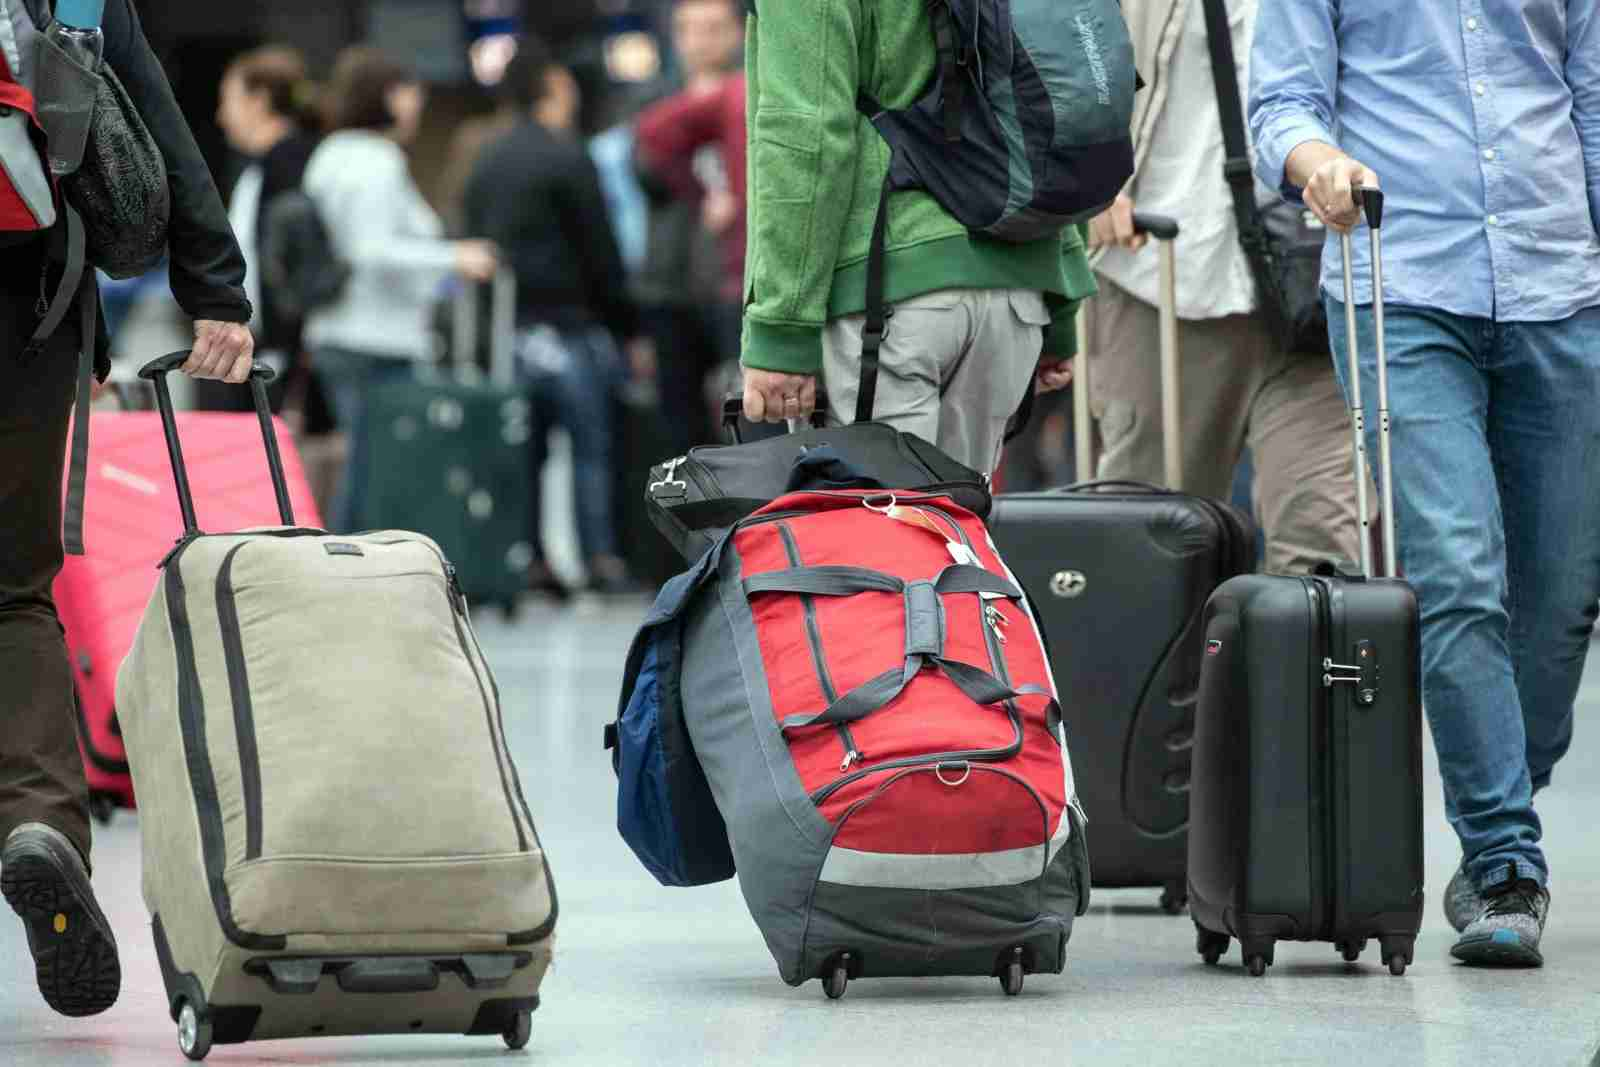 Passengers will soon be entitled to additional compensation for lost or damaged luggage. (Photo by Federico Gambarini/picture alliance via Getty Images)